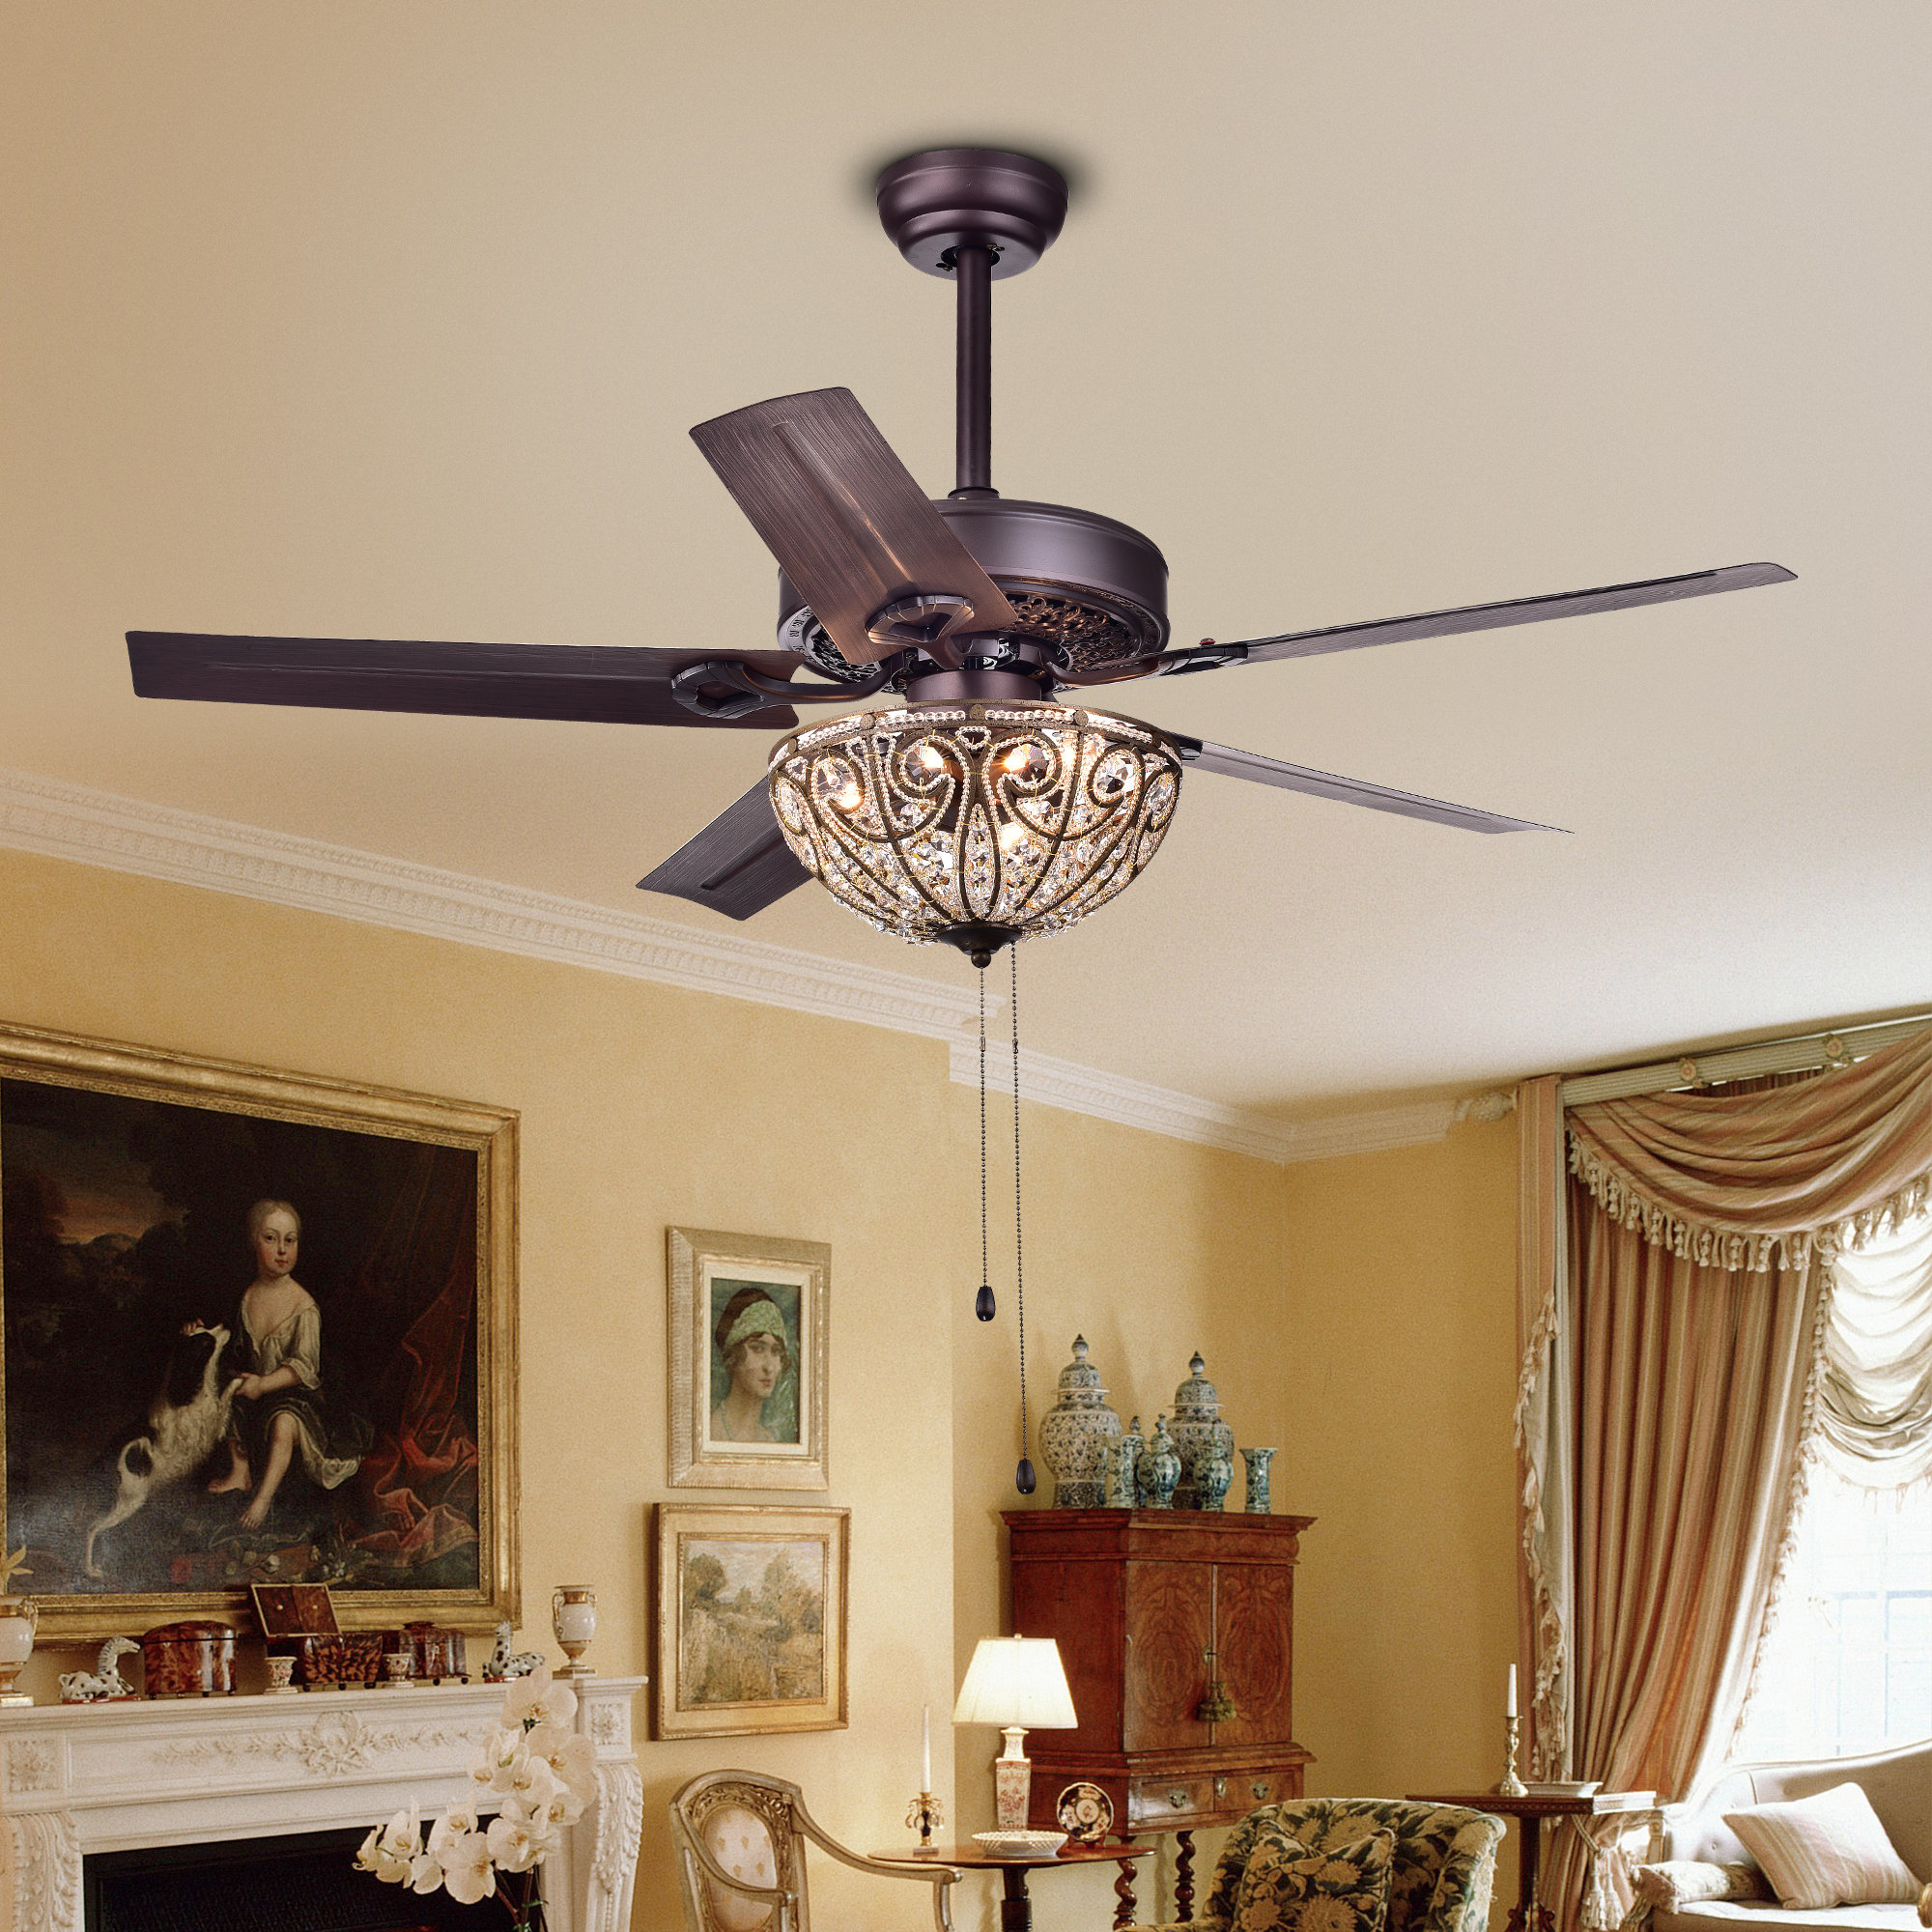 """Widely Used Norah 5 Blade Ceiling Fans For 48"""" 5 Blade Ceiling Fan, Light Kit Included (View 19 of 20)"""